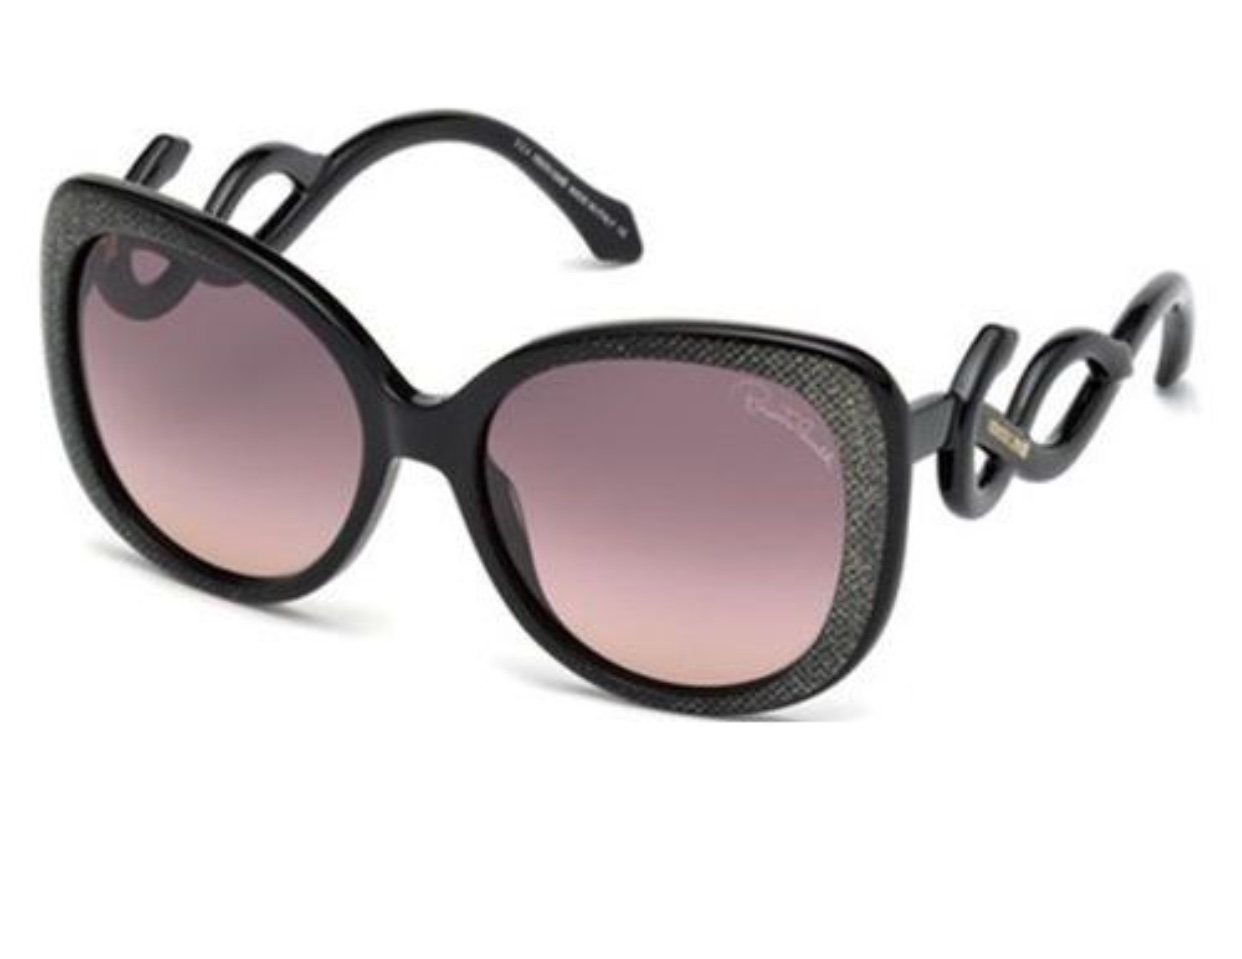 Roberto Cavalli Black With Gold Shimmer Sunglasses